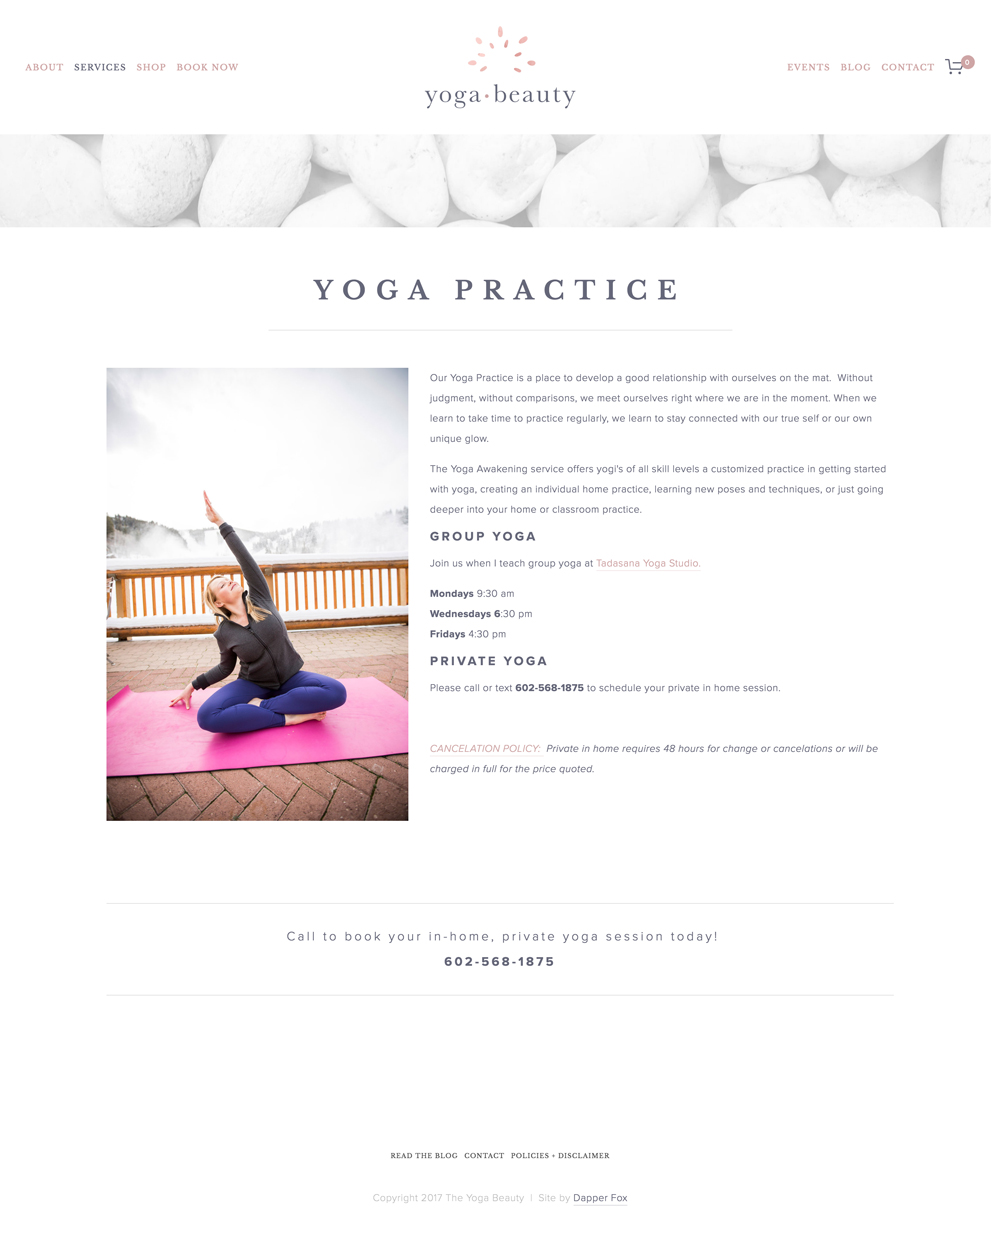 The Yoga Beauty Squarespace Website Design and Branding by Dapper Fox Design